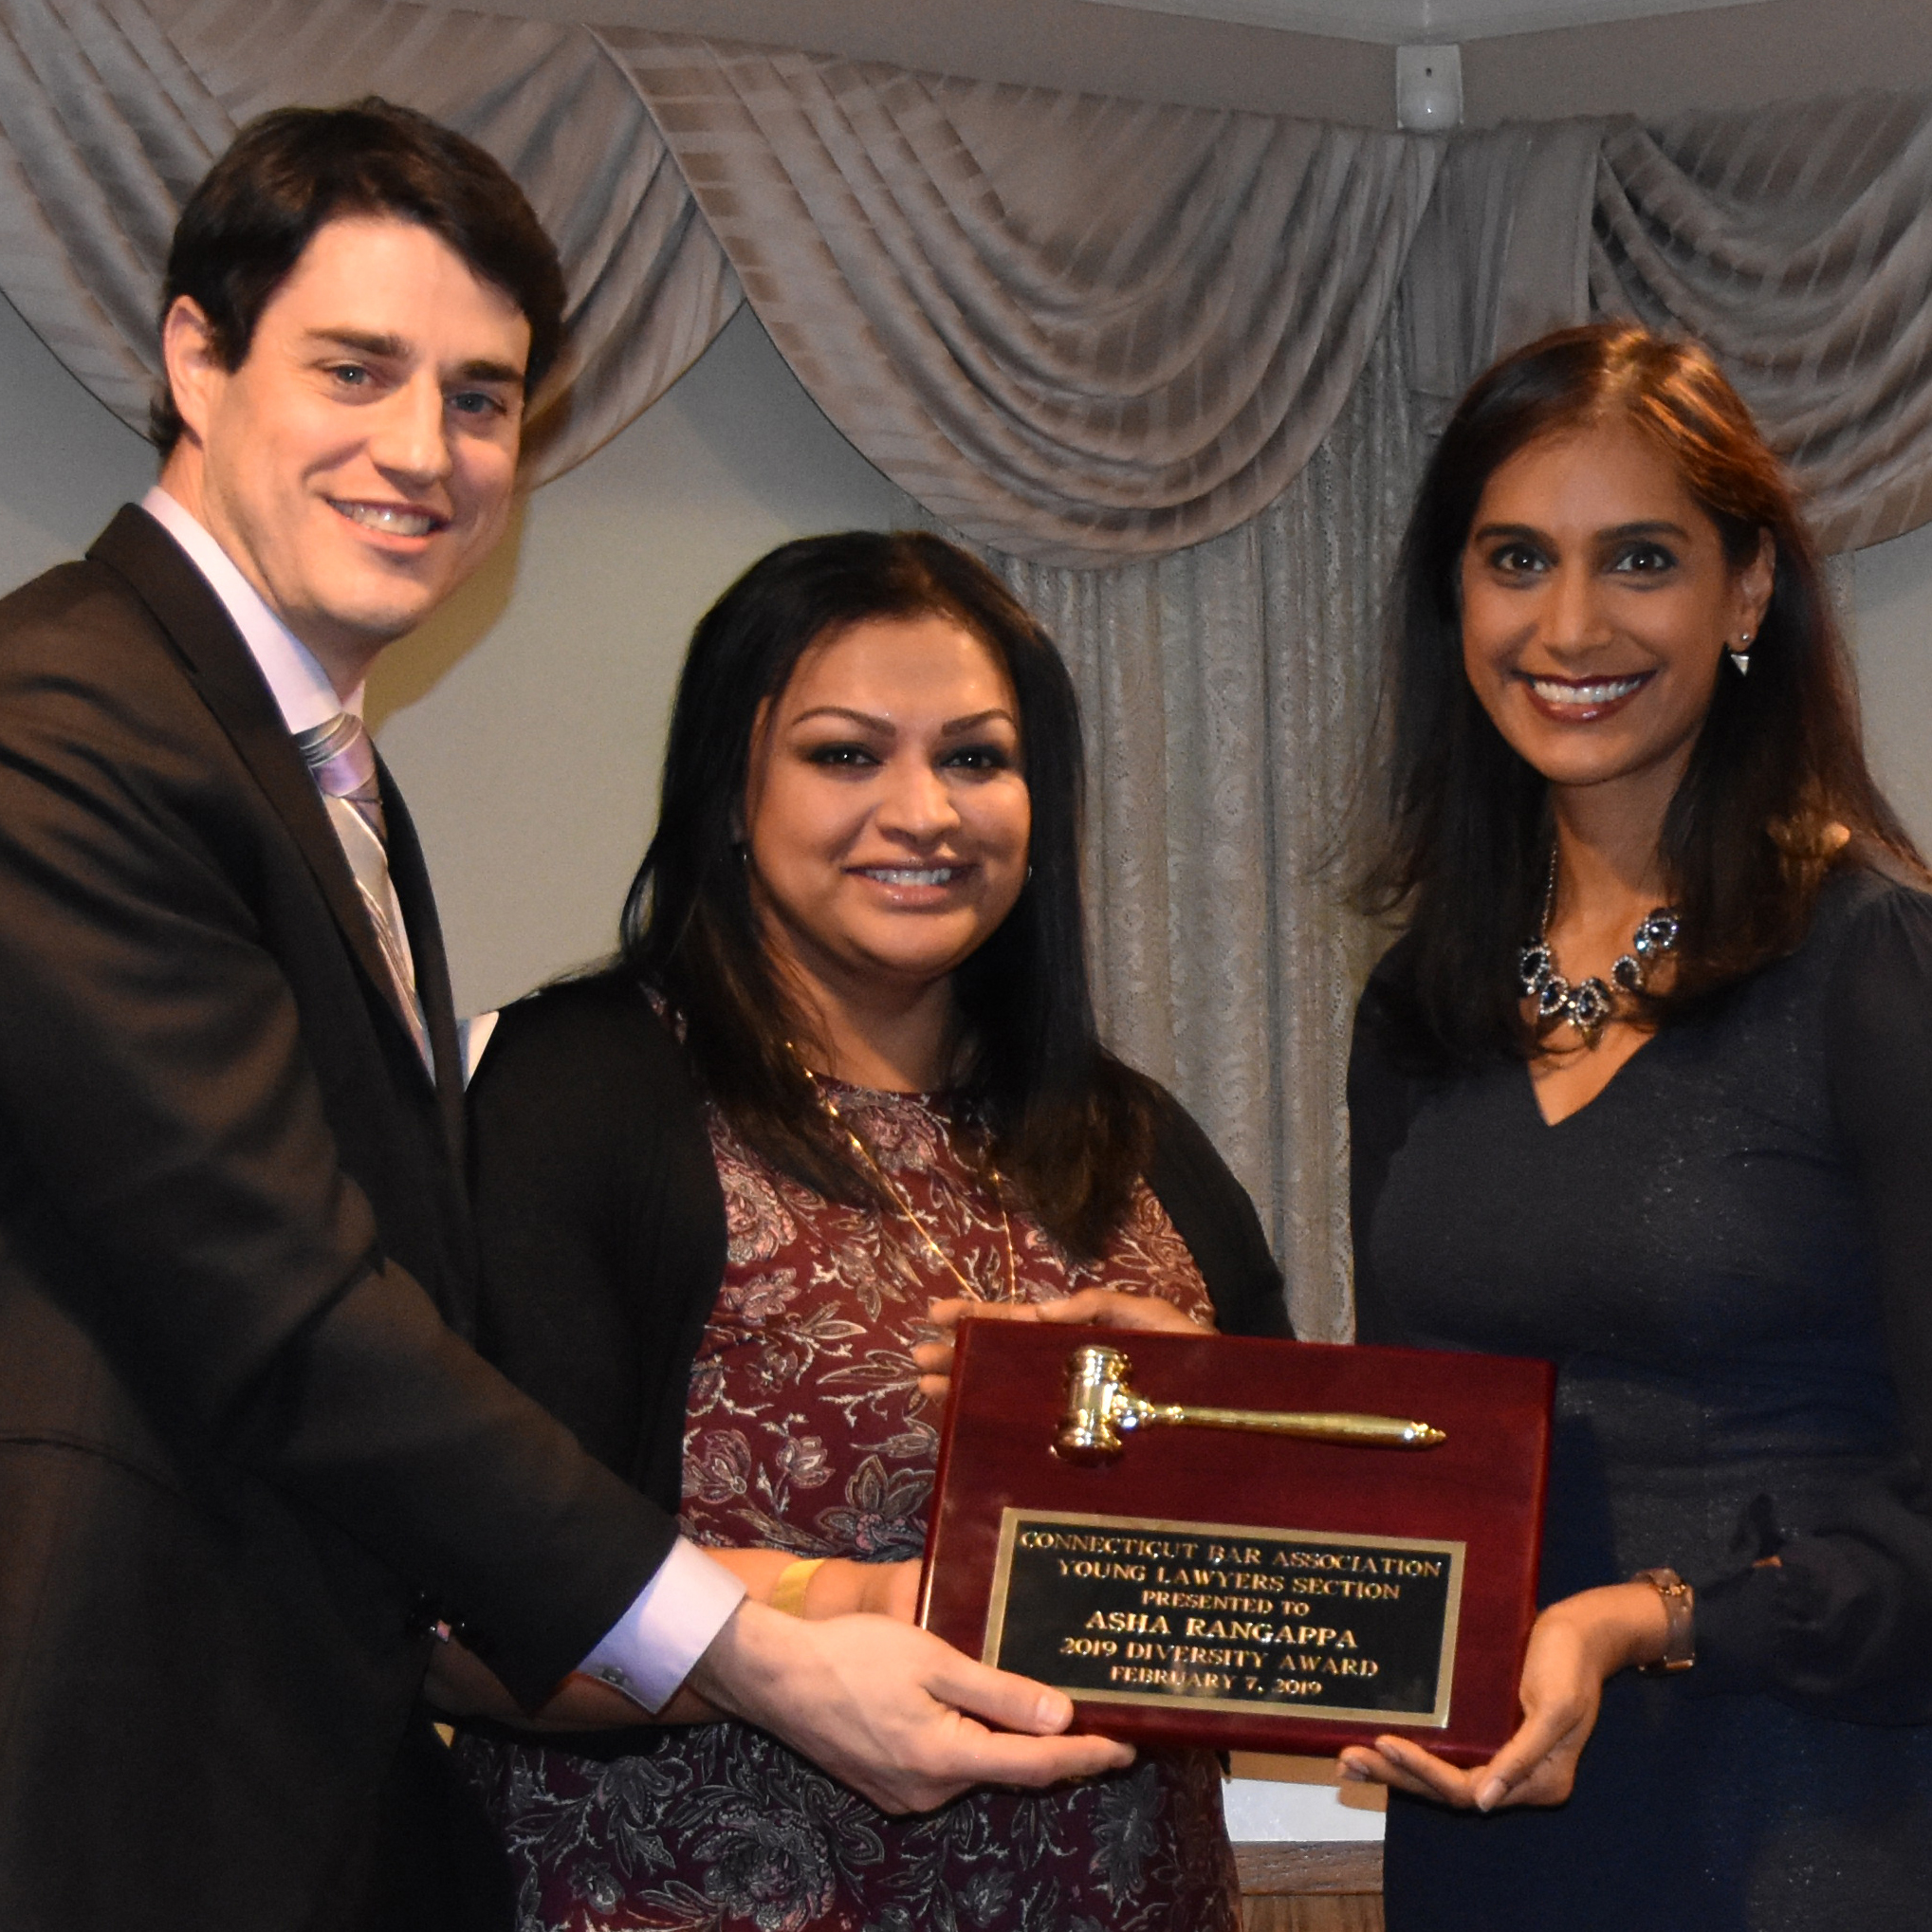 YLS Chair David A. McGrath, YLS Senior Advsior Suphi A. Philip, and Diversity Award recipient Asha Rangappa